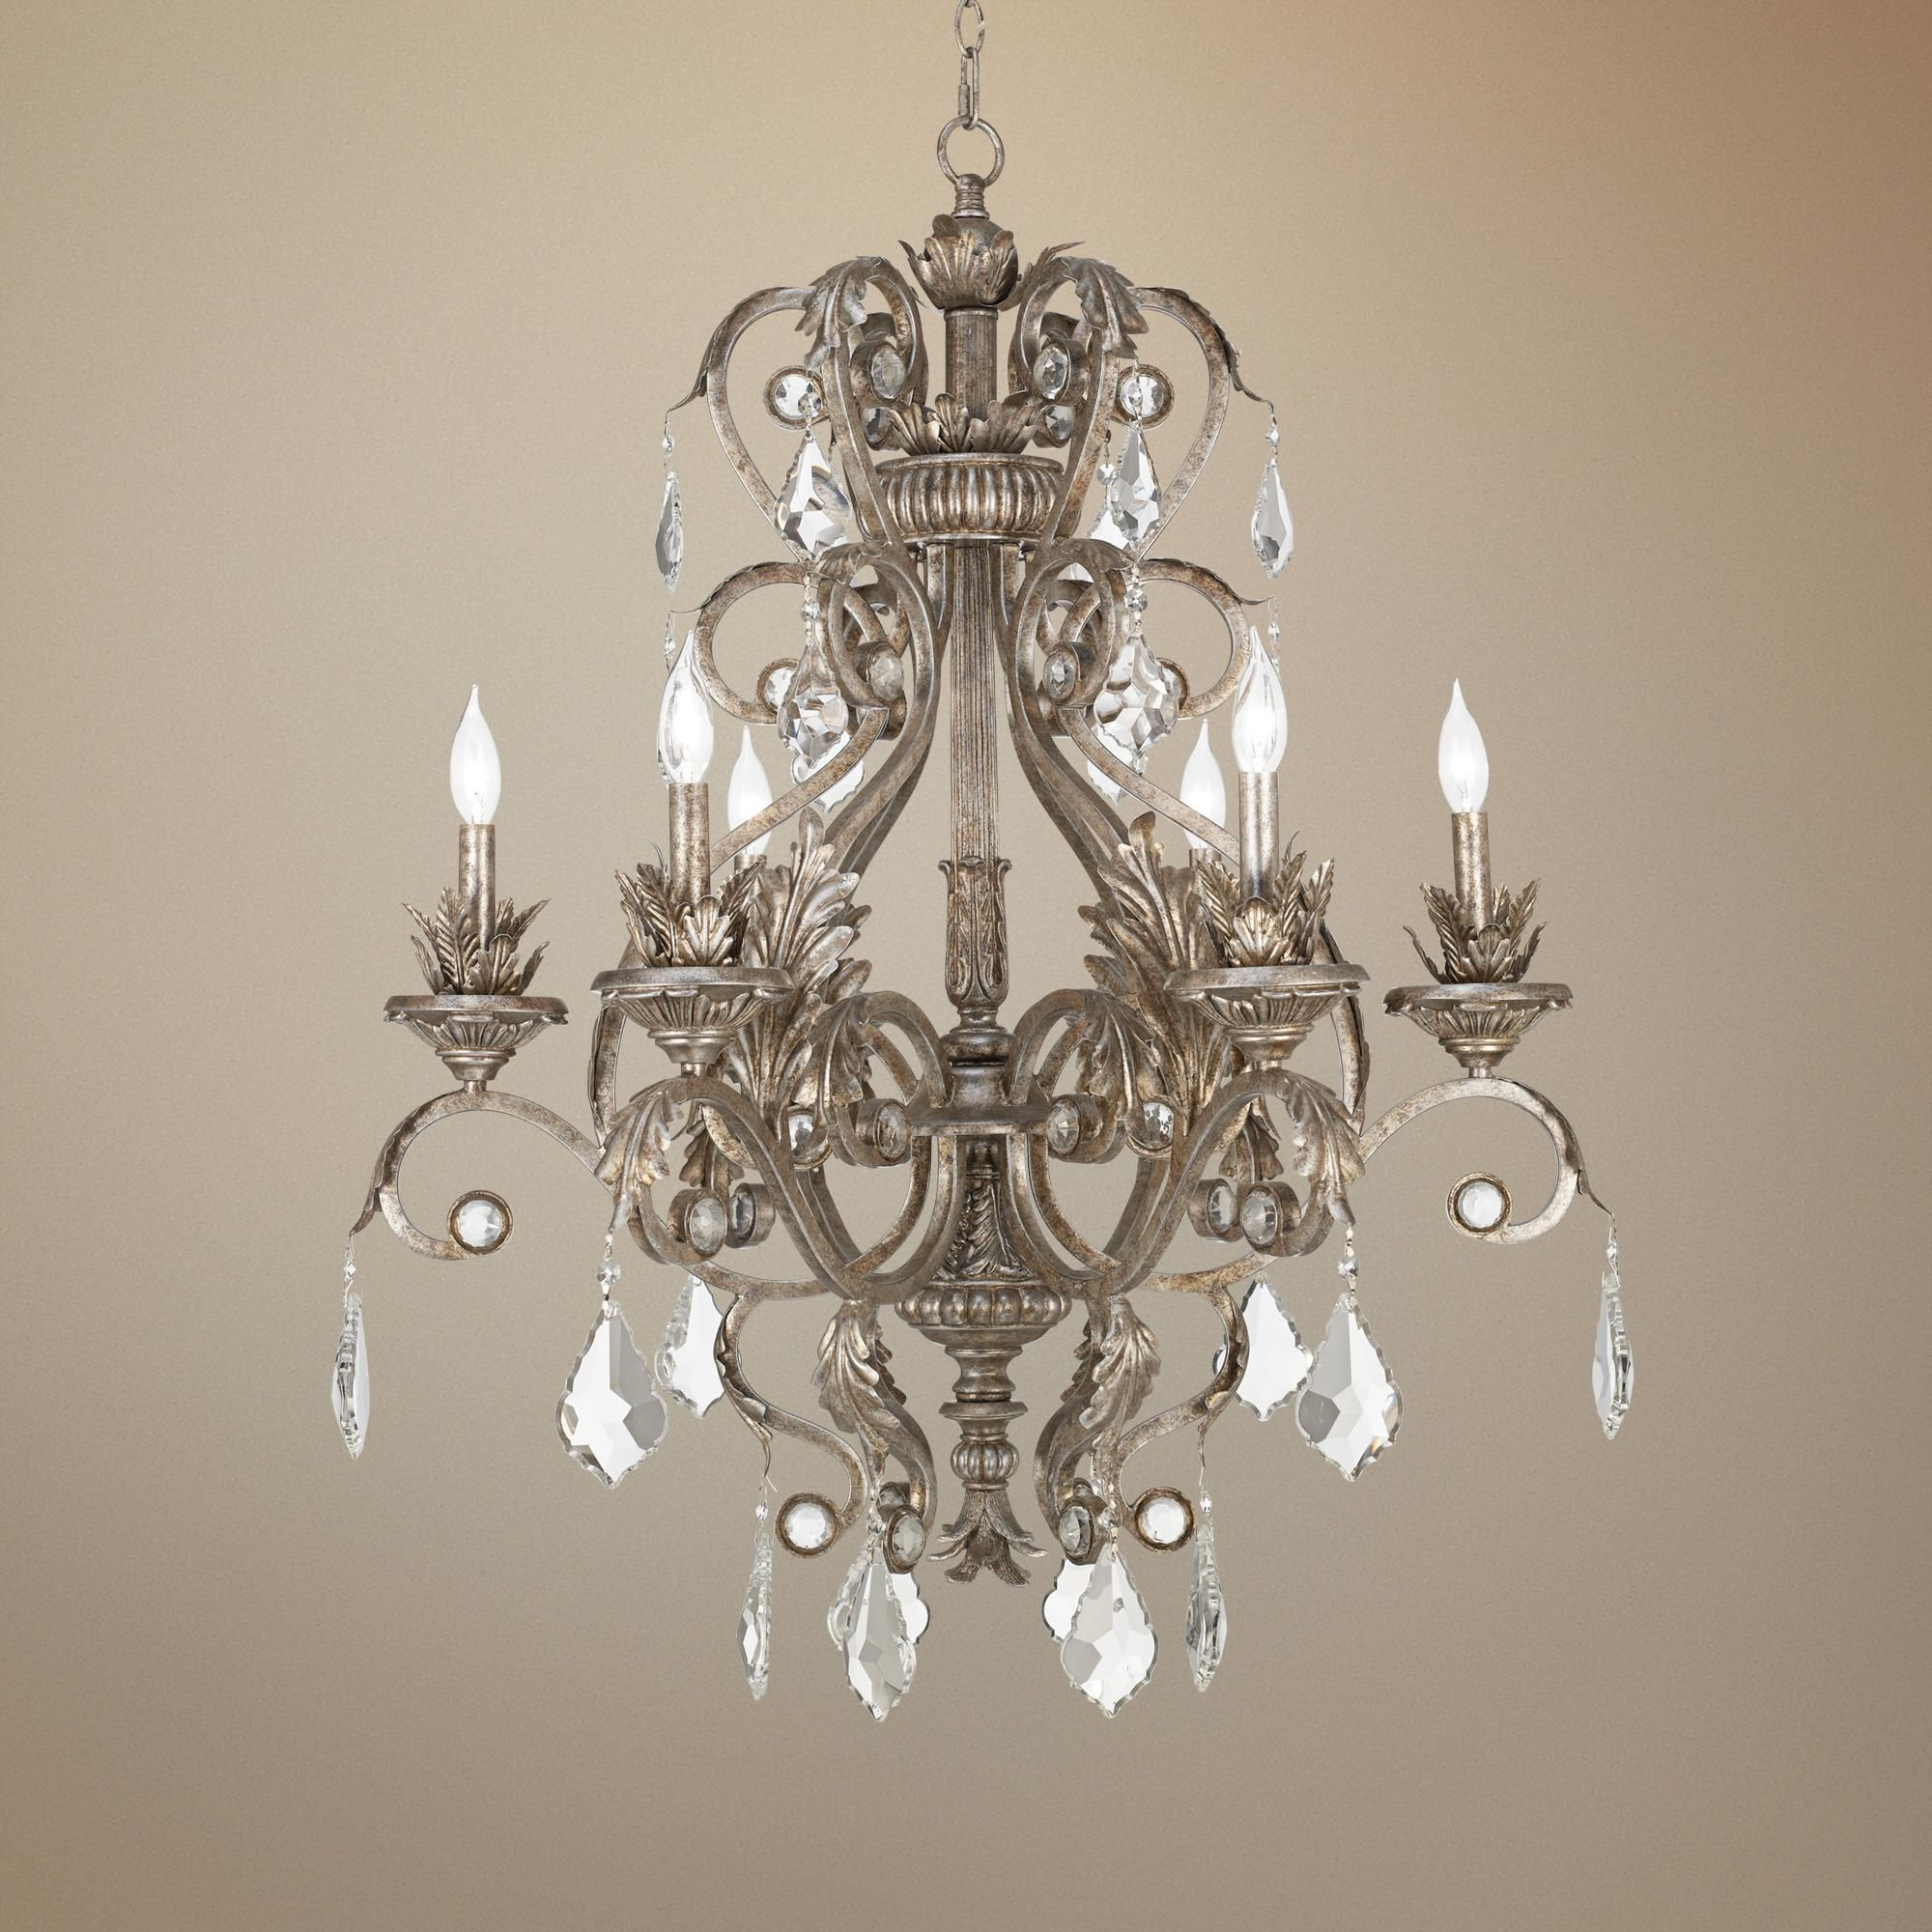 "Lights Plus Decor: Kathy Ireland 30"" Wide Metallic Silver Chandelier"